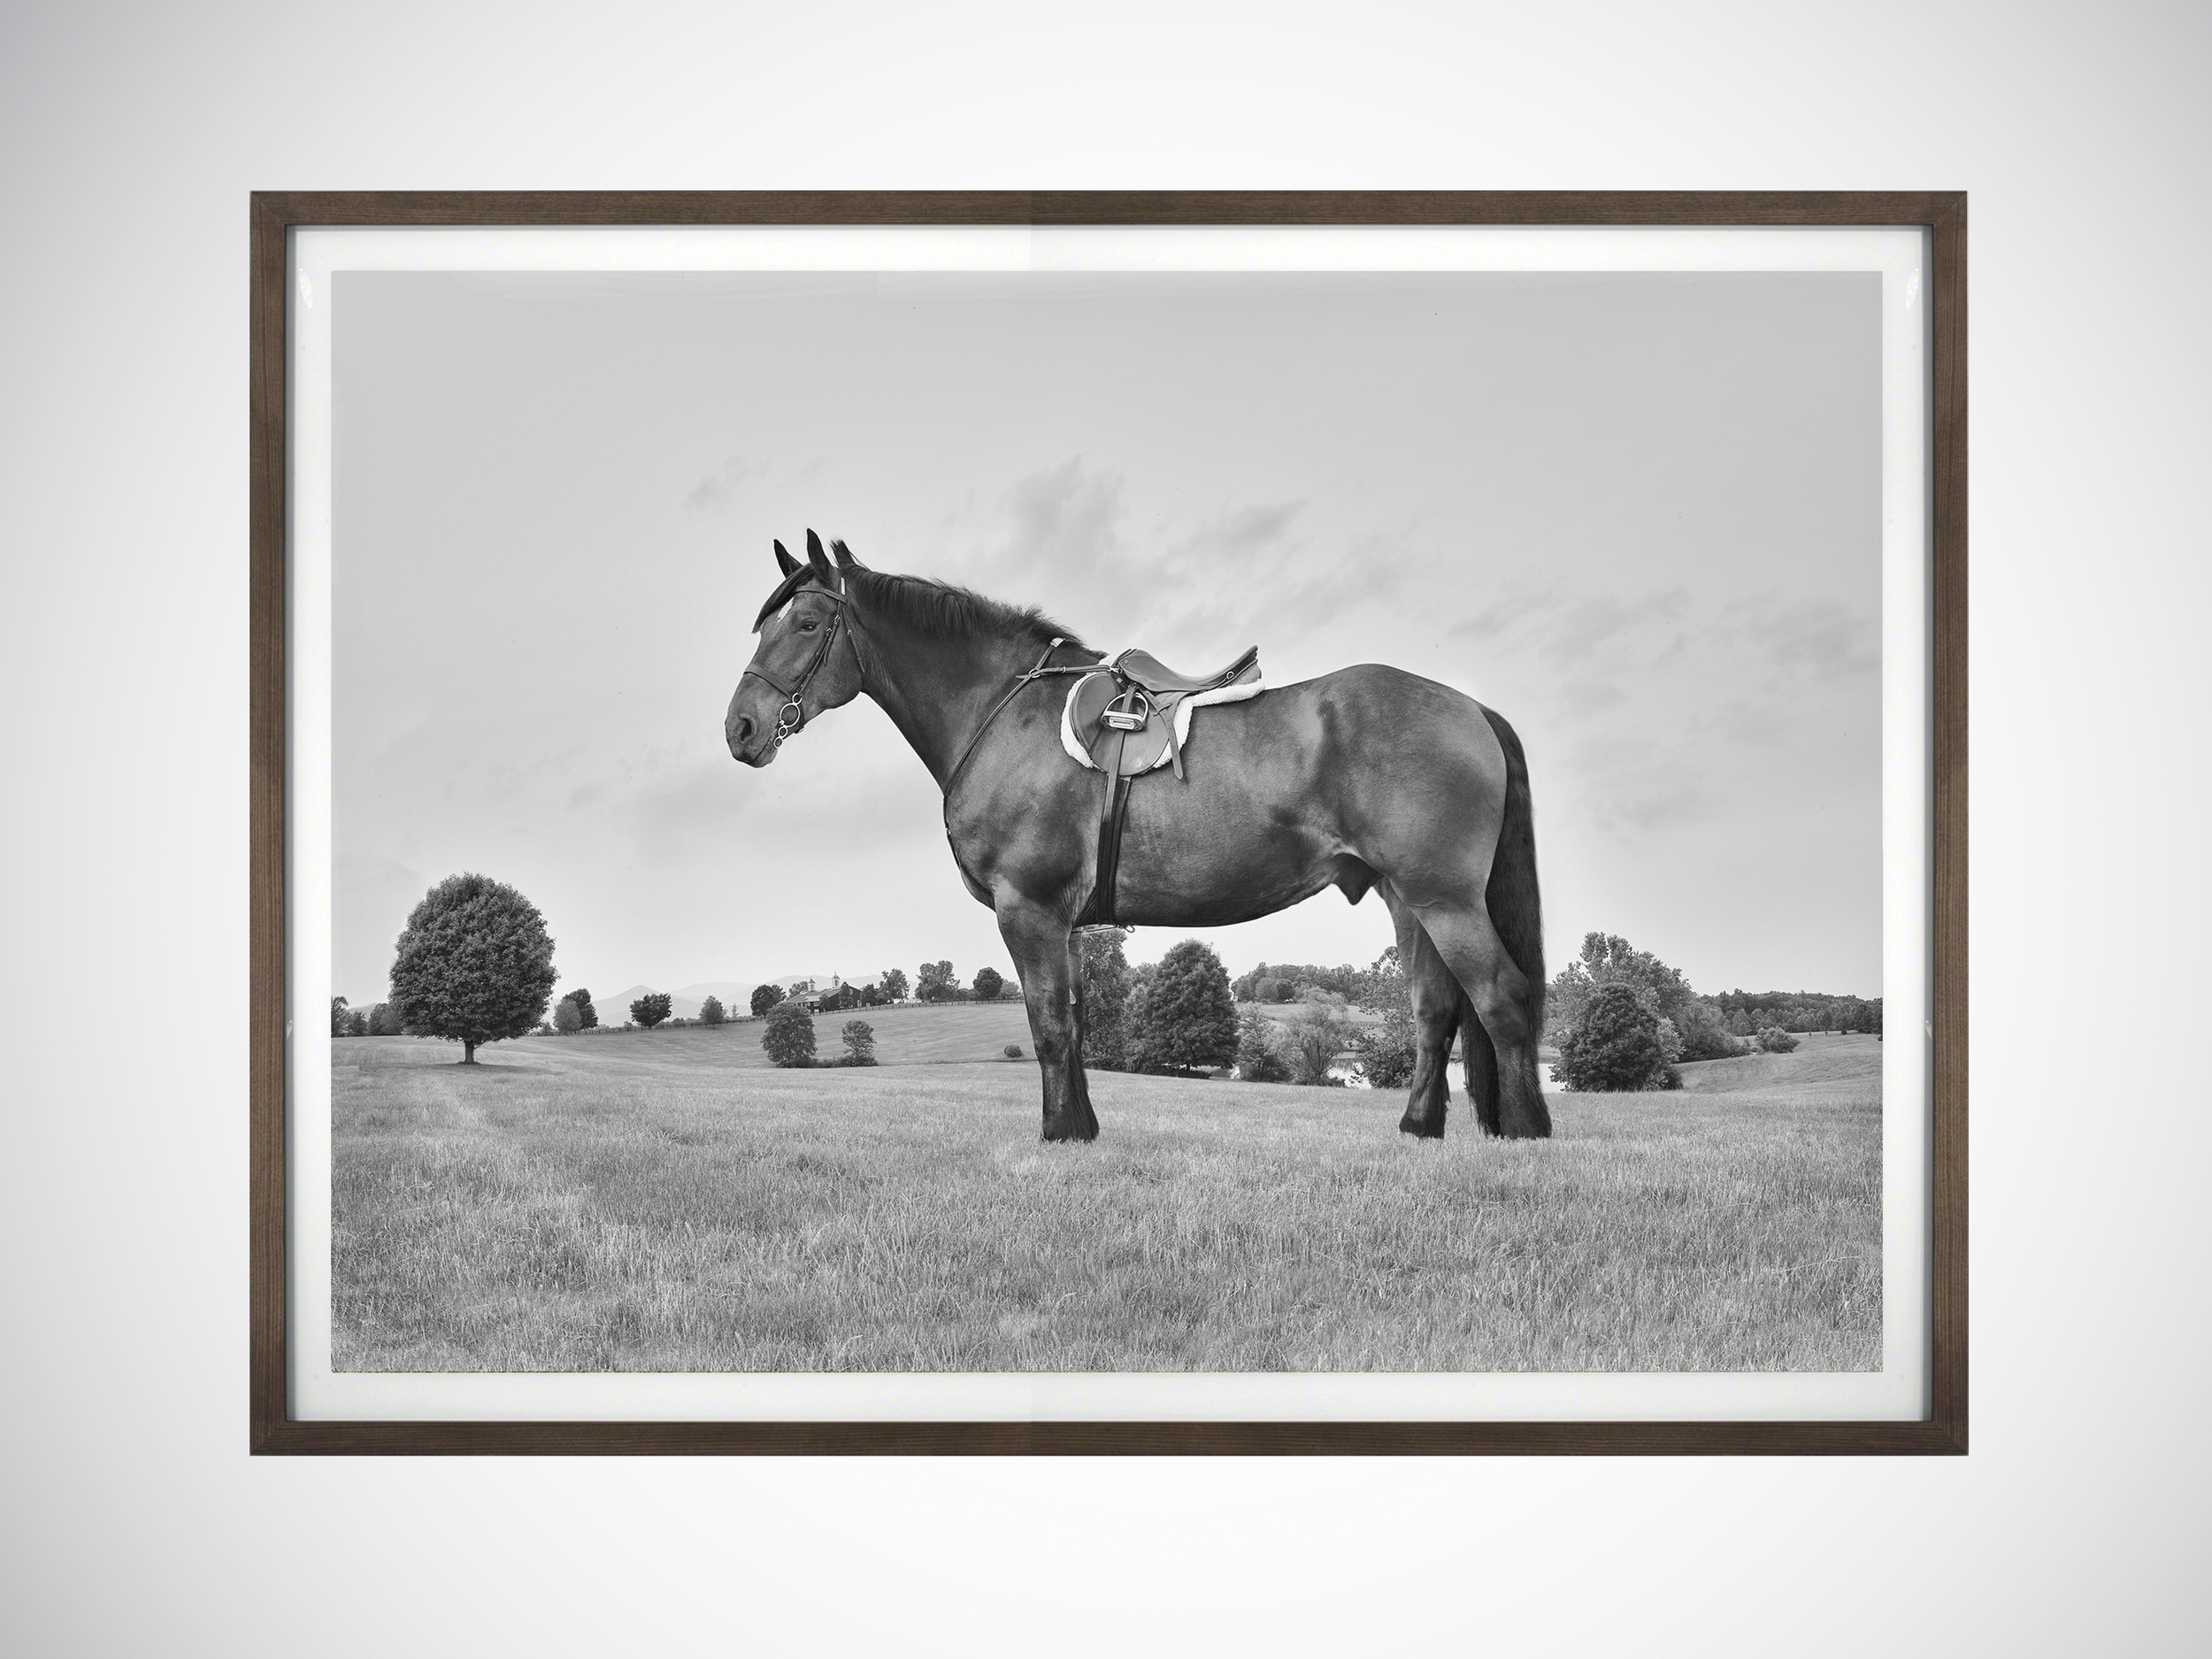 Post Production - Although Leon's equine portraiture displays a timeless and almost effortless quality, it belies the fact that each image is meticulously layered and seamlessly put together using complex modern photographic techniques.Hempstead May is a post production and print house with studios in New York and London. They are at the cutting edge of the fashion and luxury brand industries.They are responsible for many iconic advertising campaigns and editorial stories, and work alongside many of the world's leading fashion and advertising photographers. Leon has worked with Jon Hempstead and India May for a number of years and considers them an integral part of his process.